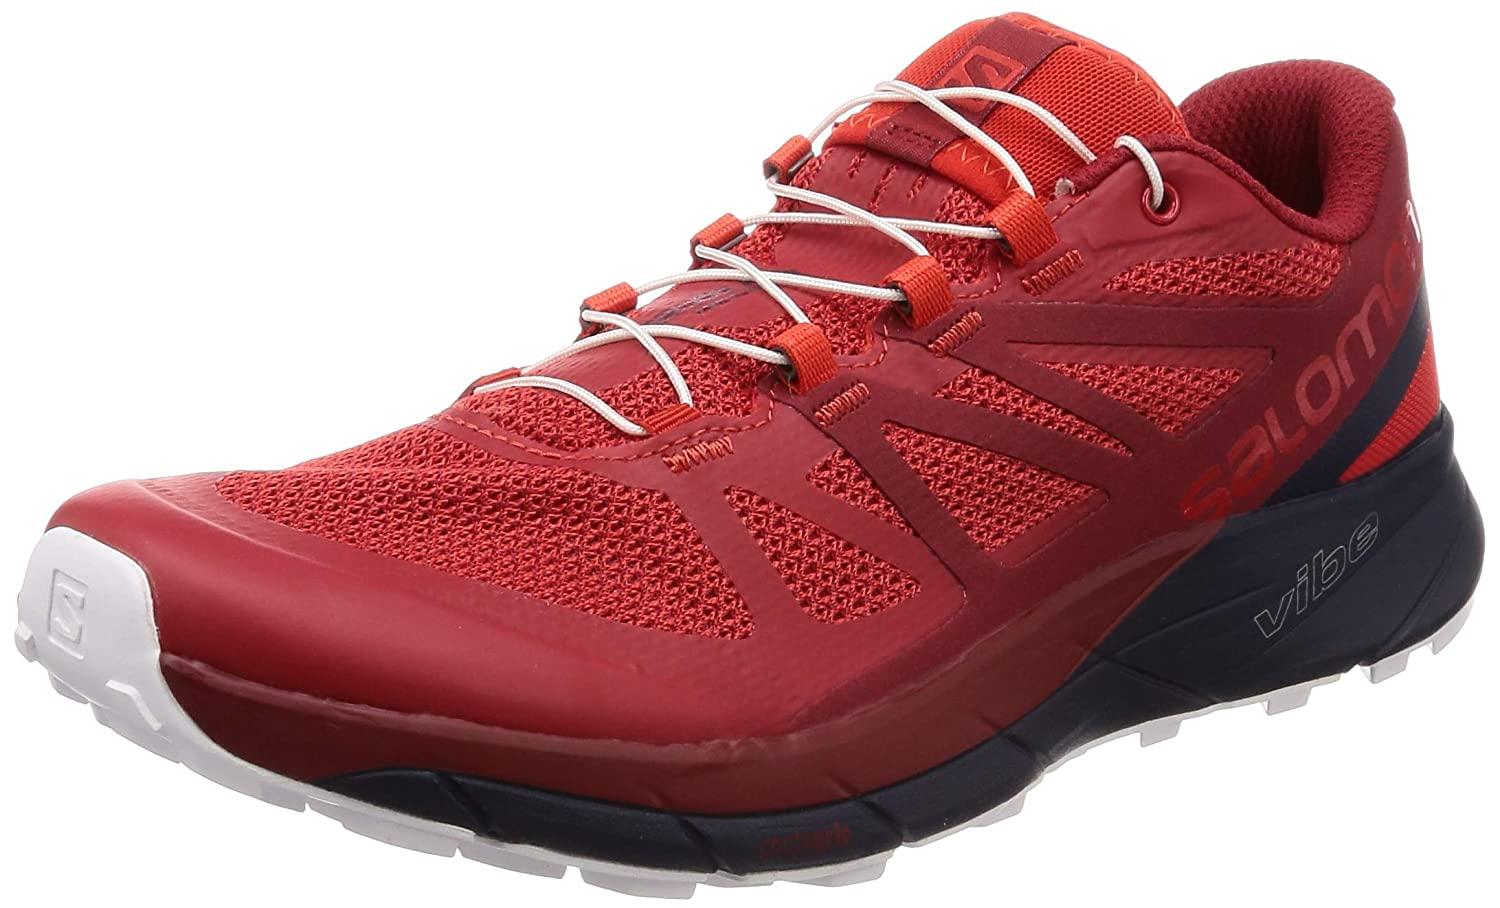 b1977ed333a Salomon Sense Ride Running Shoe Men s - Men s Shoe B078SYBJSJ Trail Running  3f42a6